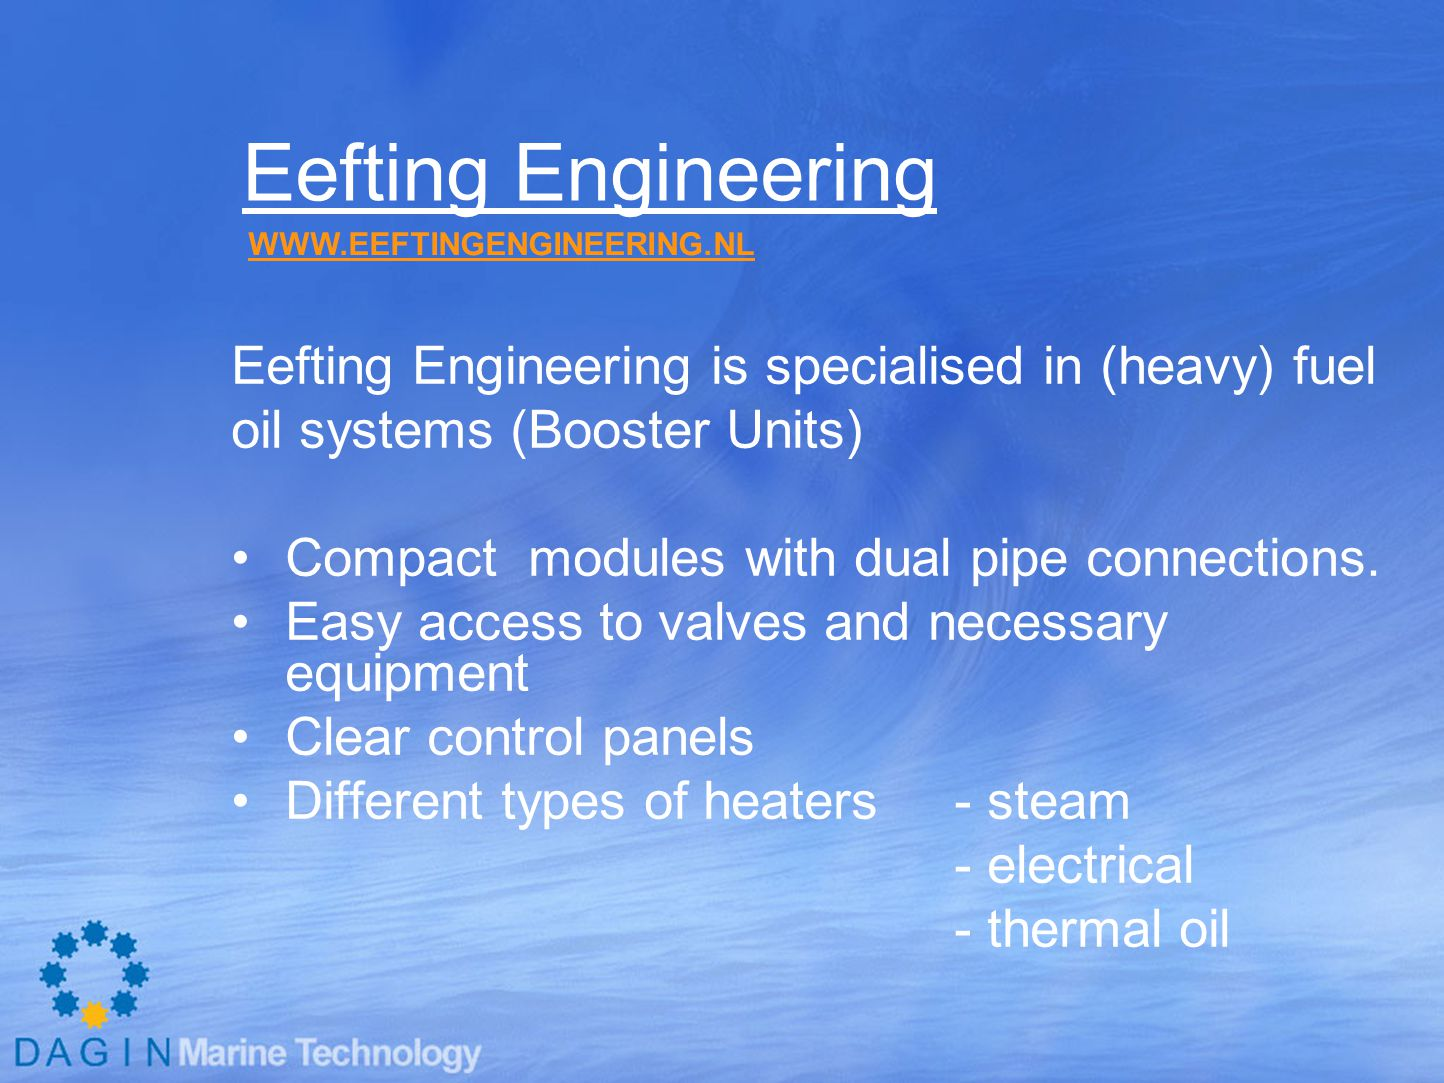 Eefting Engineering Eefting Engineering is specialised in (heavy) fuel